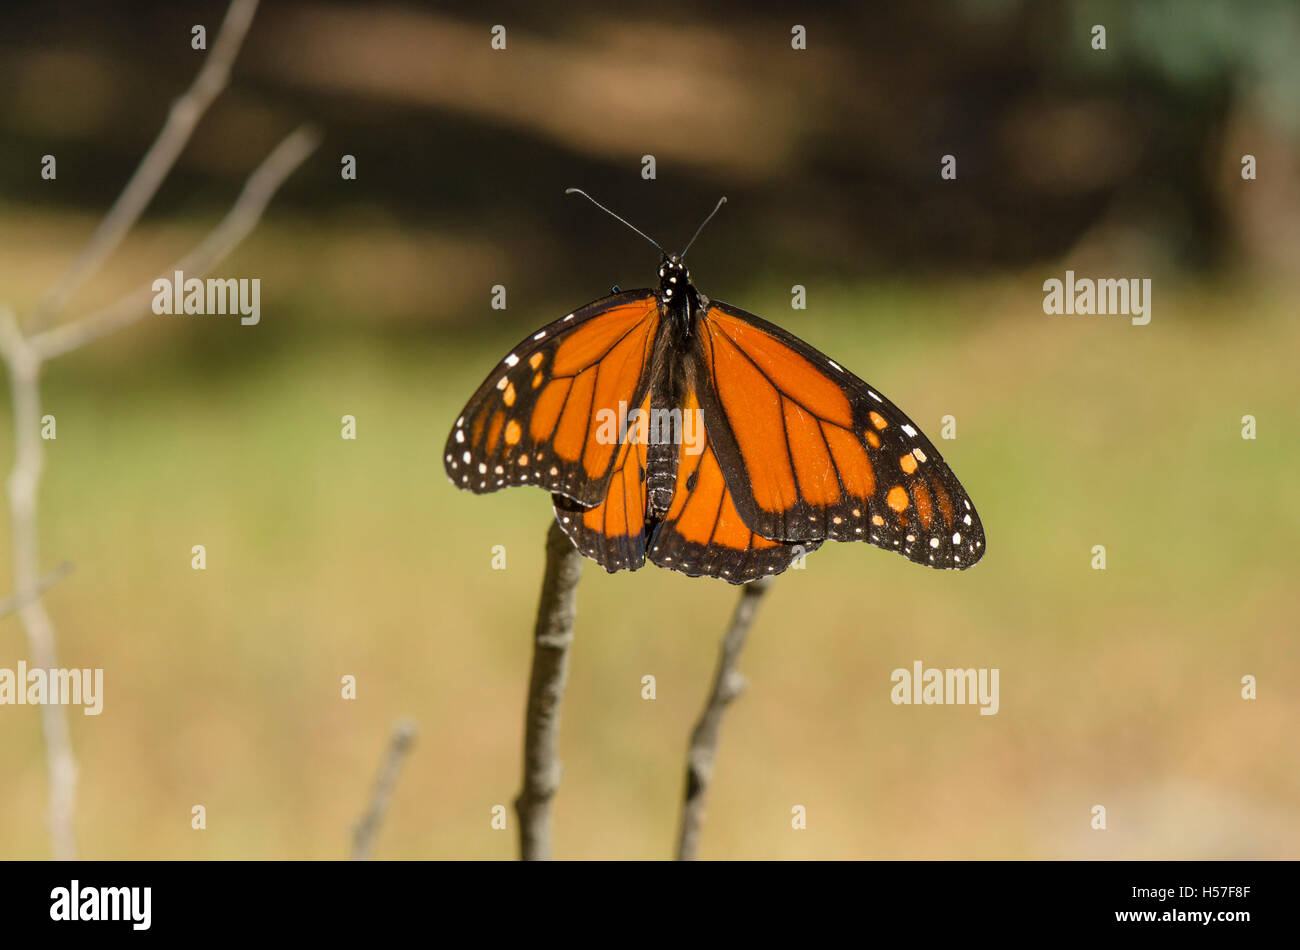 The Black Veined Brown Butterfly Stock Photos & The Black Veined ...